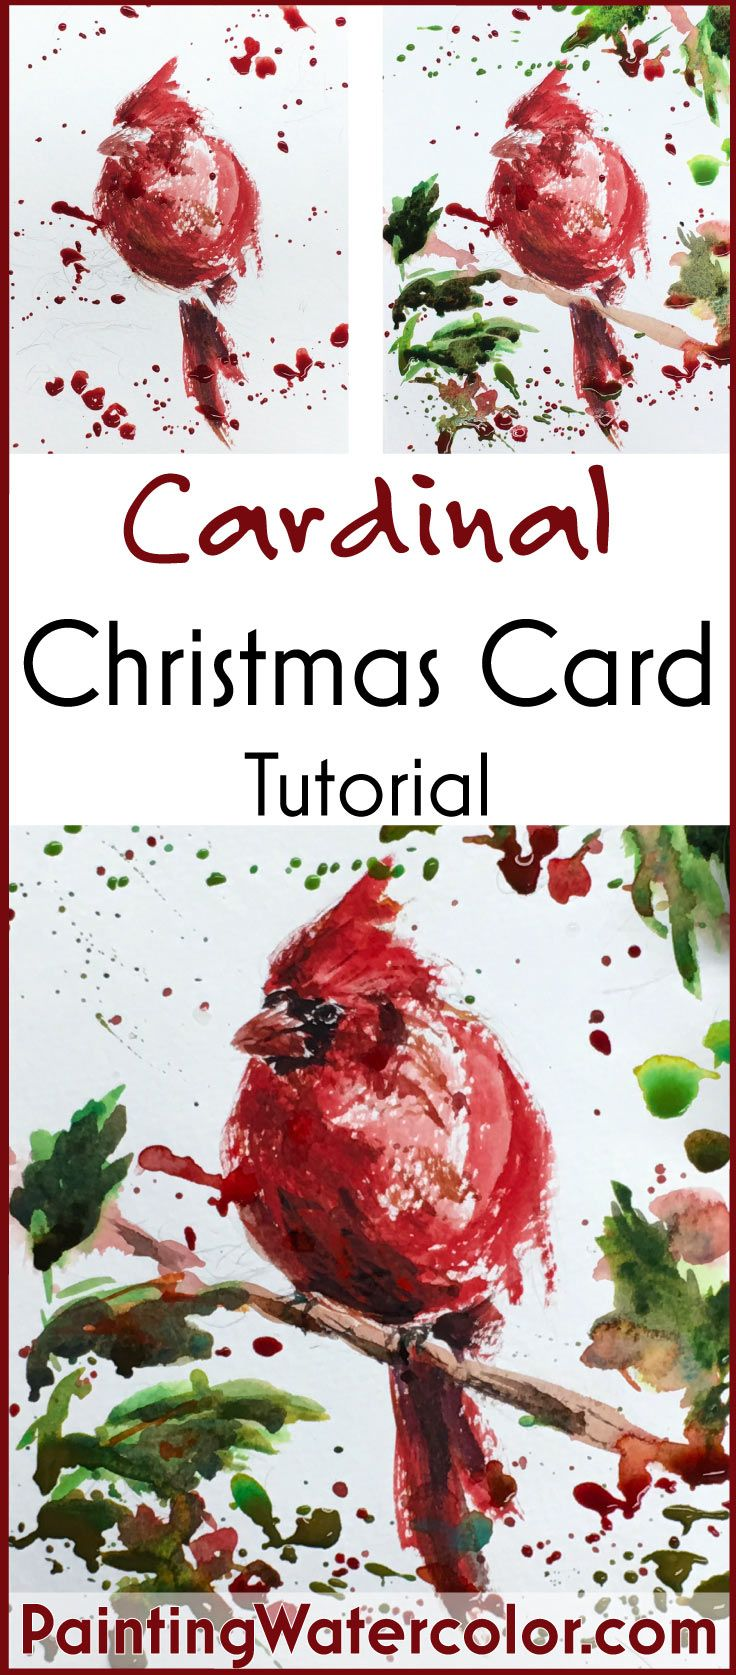 Learn to paint a cardinal Christmas Card!